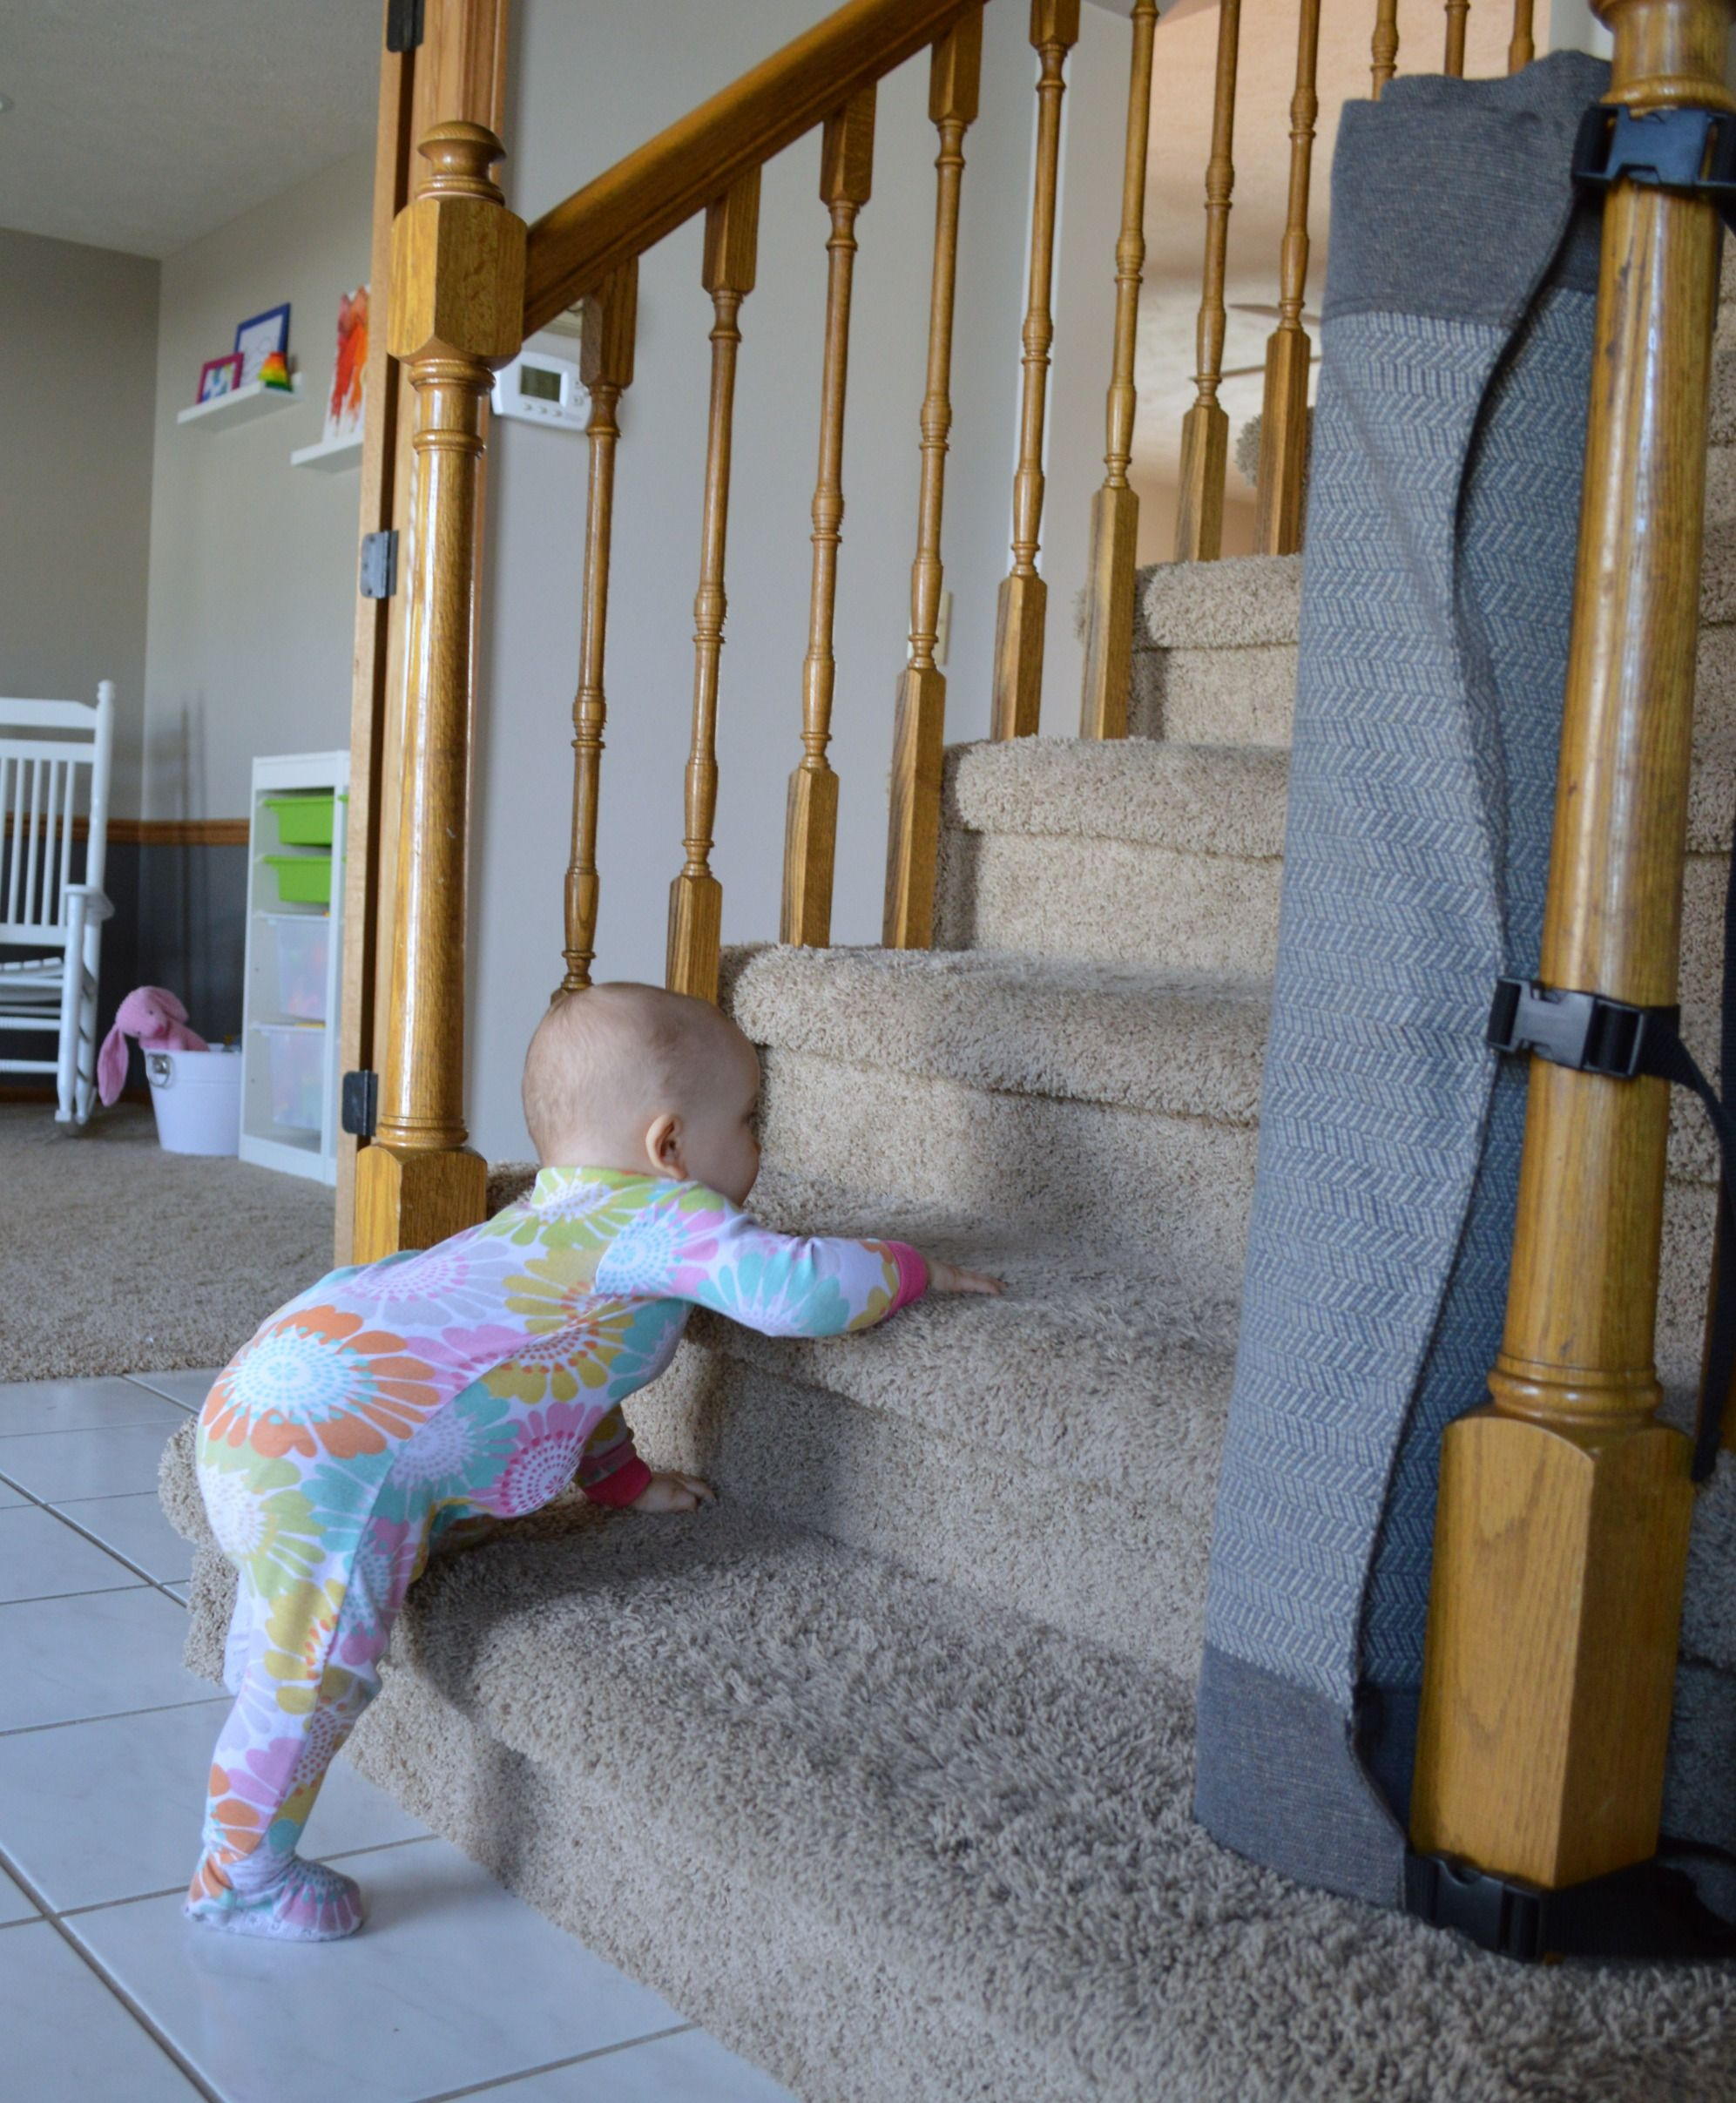 A stylish new way for baby proofing stairs Baby